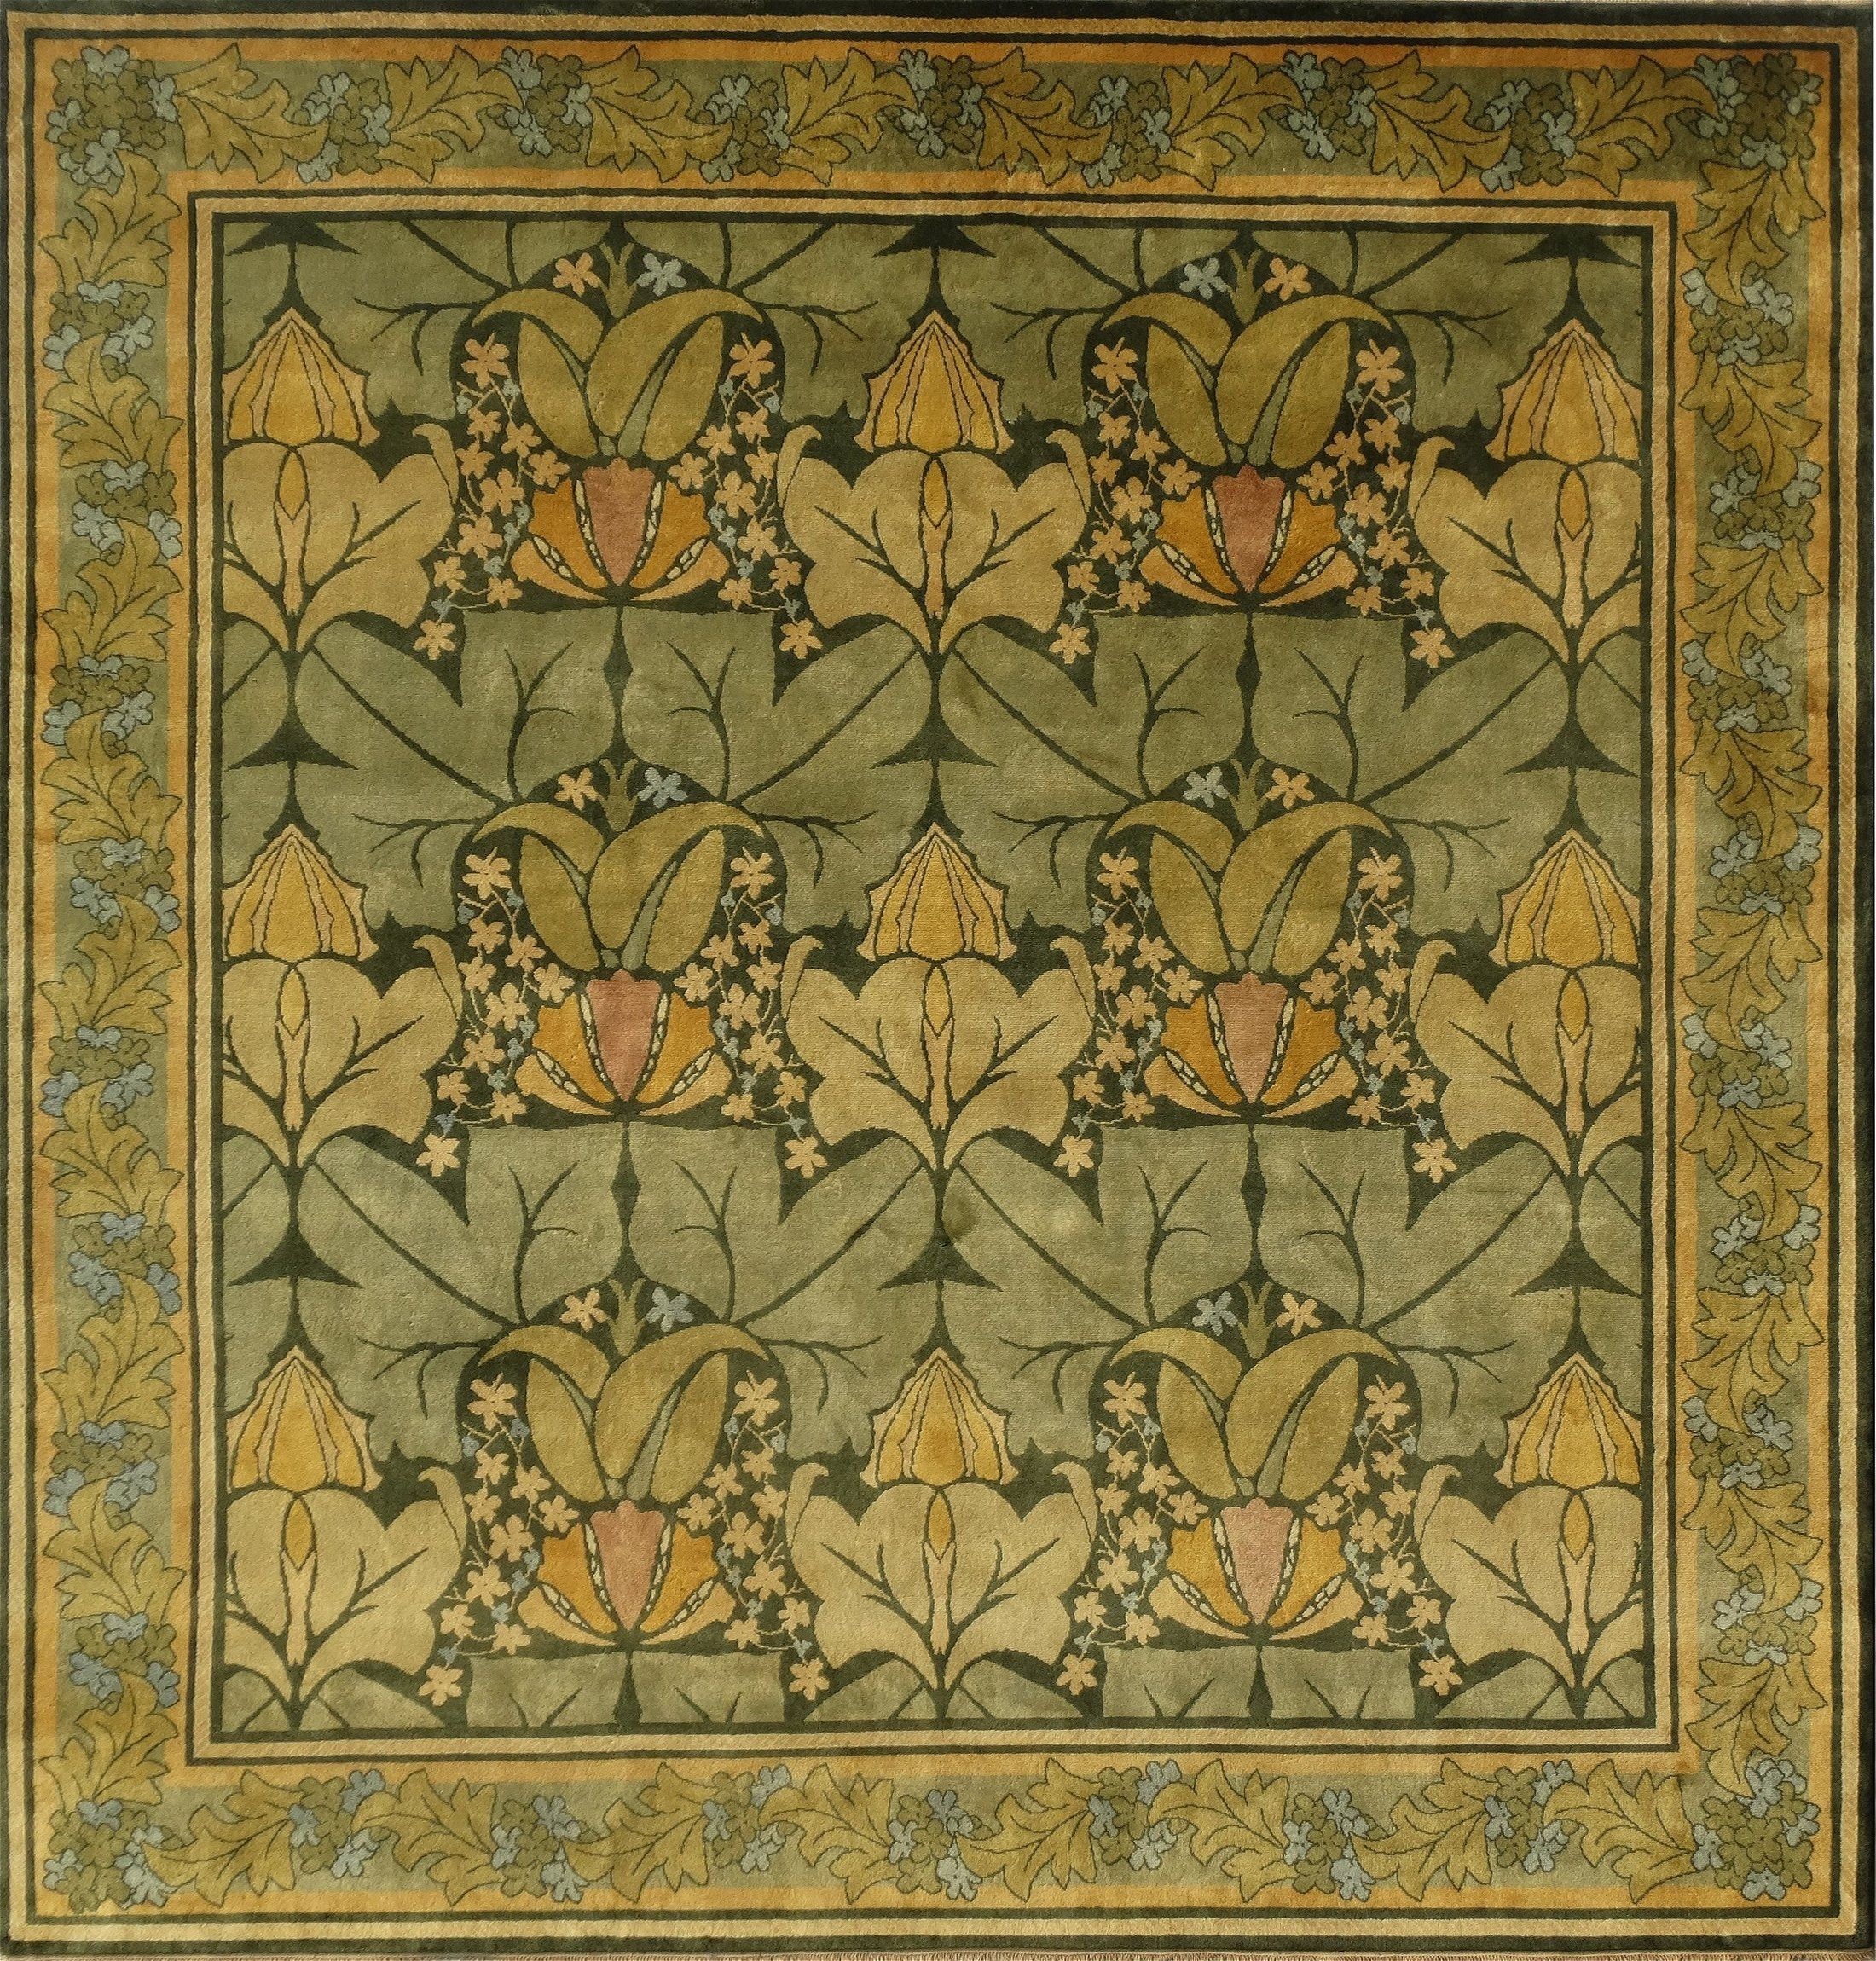 Custom Arts Crafts Rug The Wykehamist By C F A Voysey Done In Square Shape 13 X For Client S Dining Room All Guildcraft Carpets Are